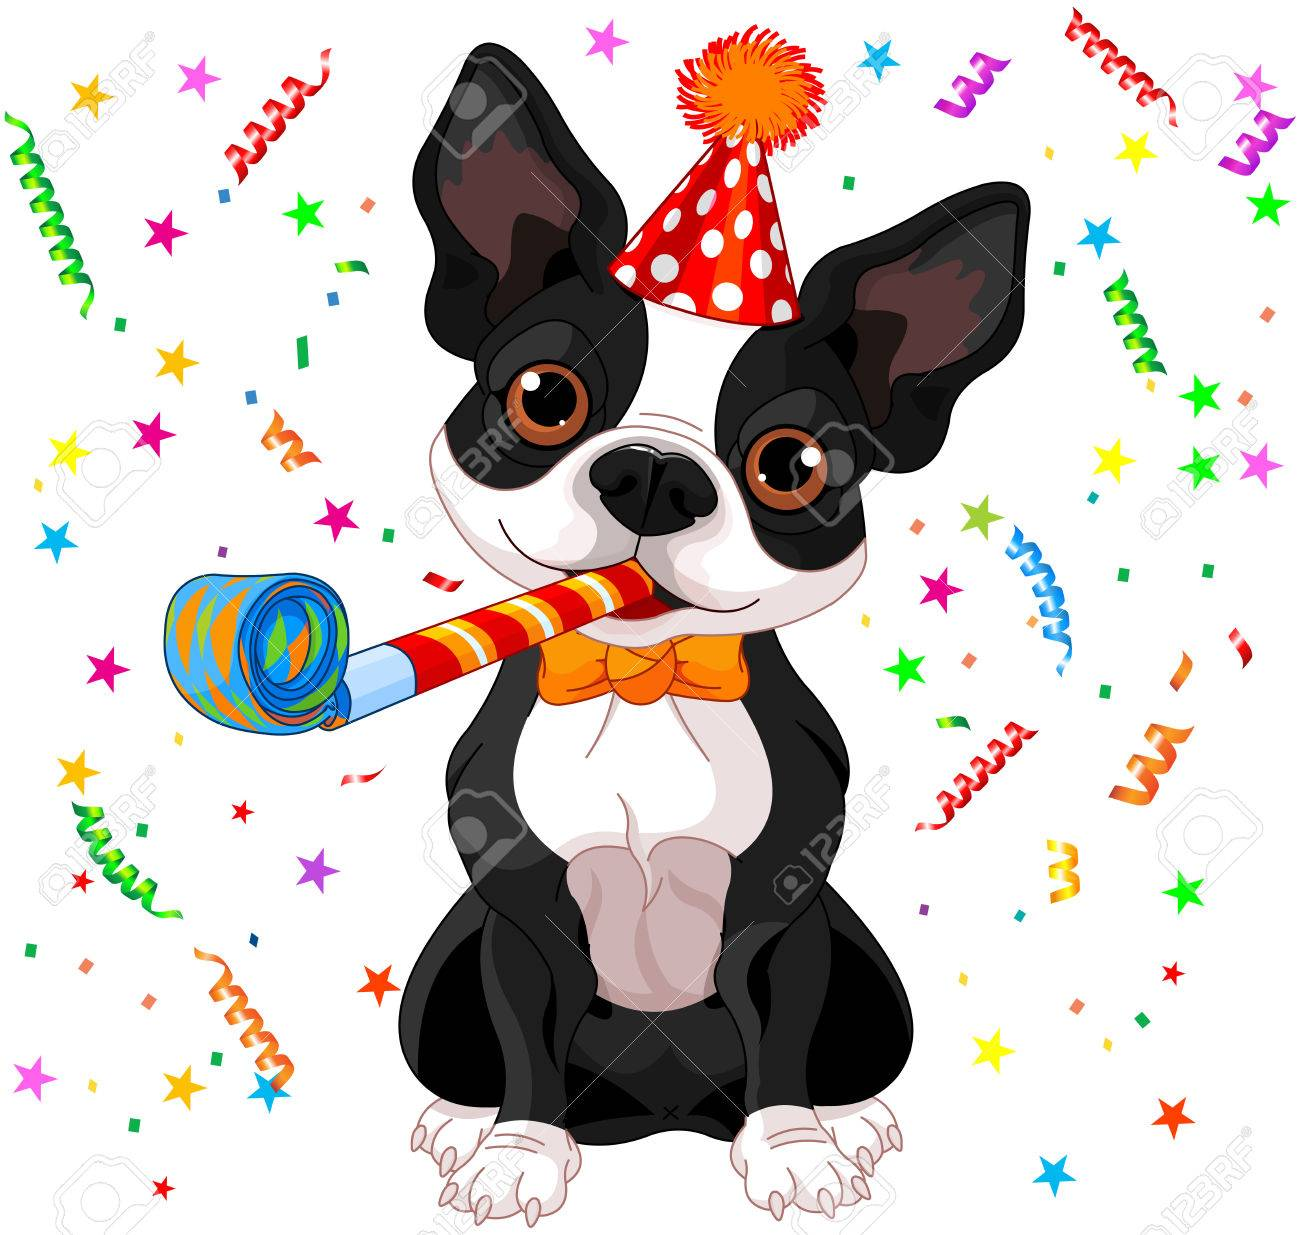 Apprendre à ne pas sauter sur les visiteurs - Page 4 35588778-illustration-of-cute-boston-terrier-celebrating